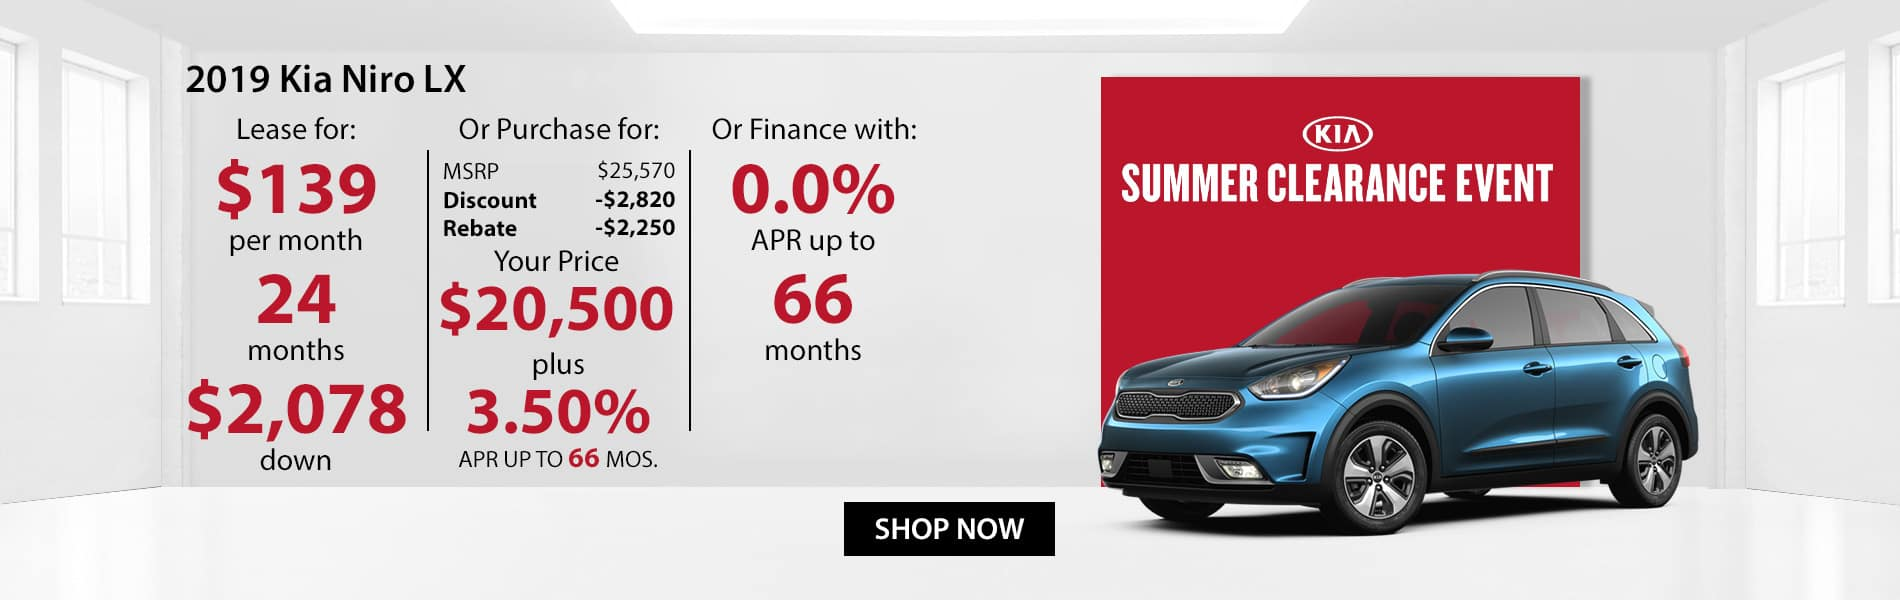 Special offer on 2019 Kia Niro LX! Lease for $139 or Purchase for $20,500 with 3.5% APR or get 0% APR for 66 months.